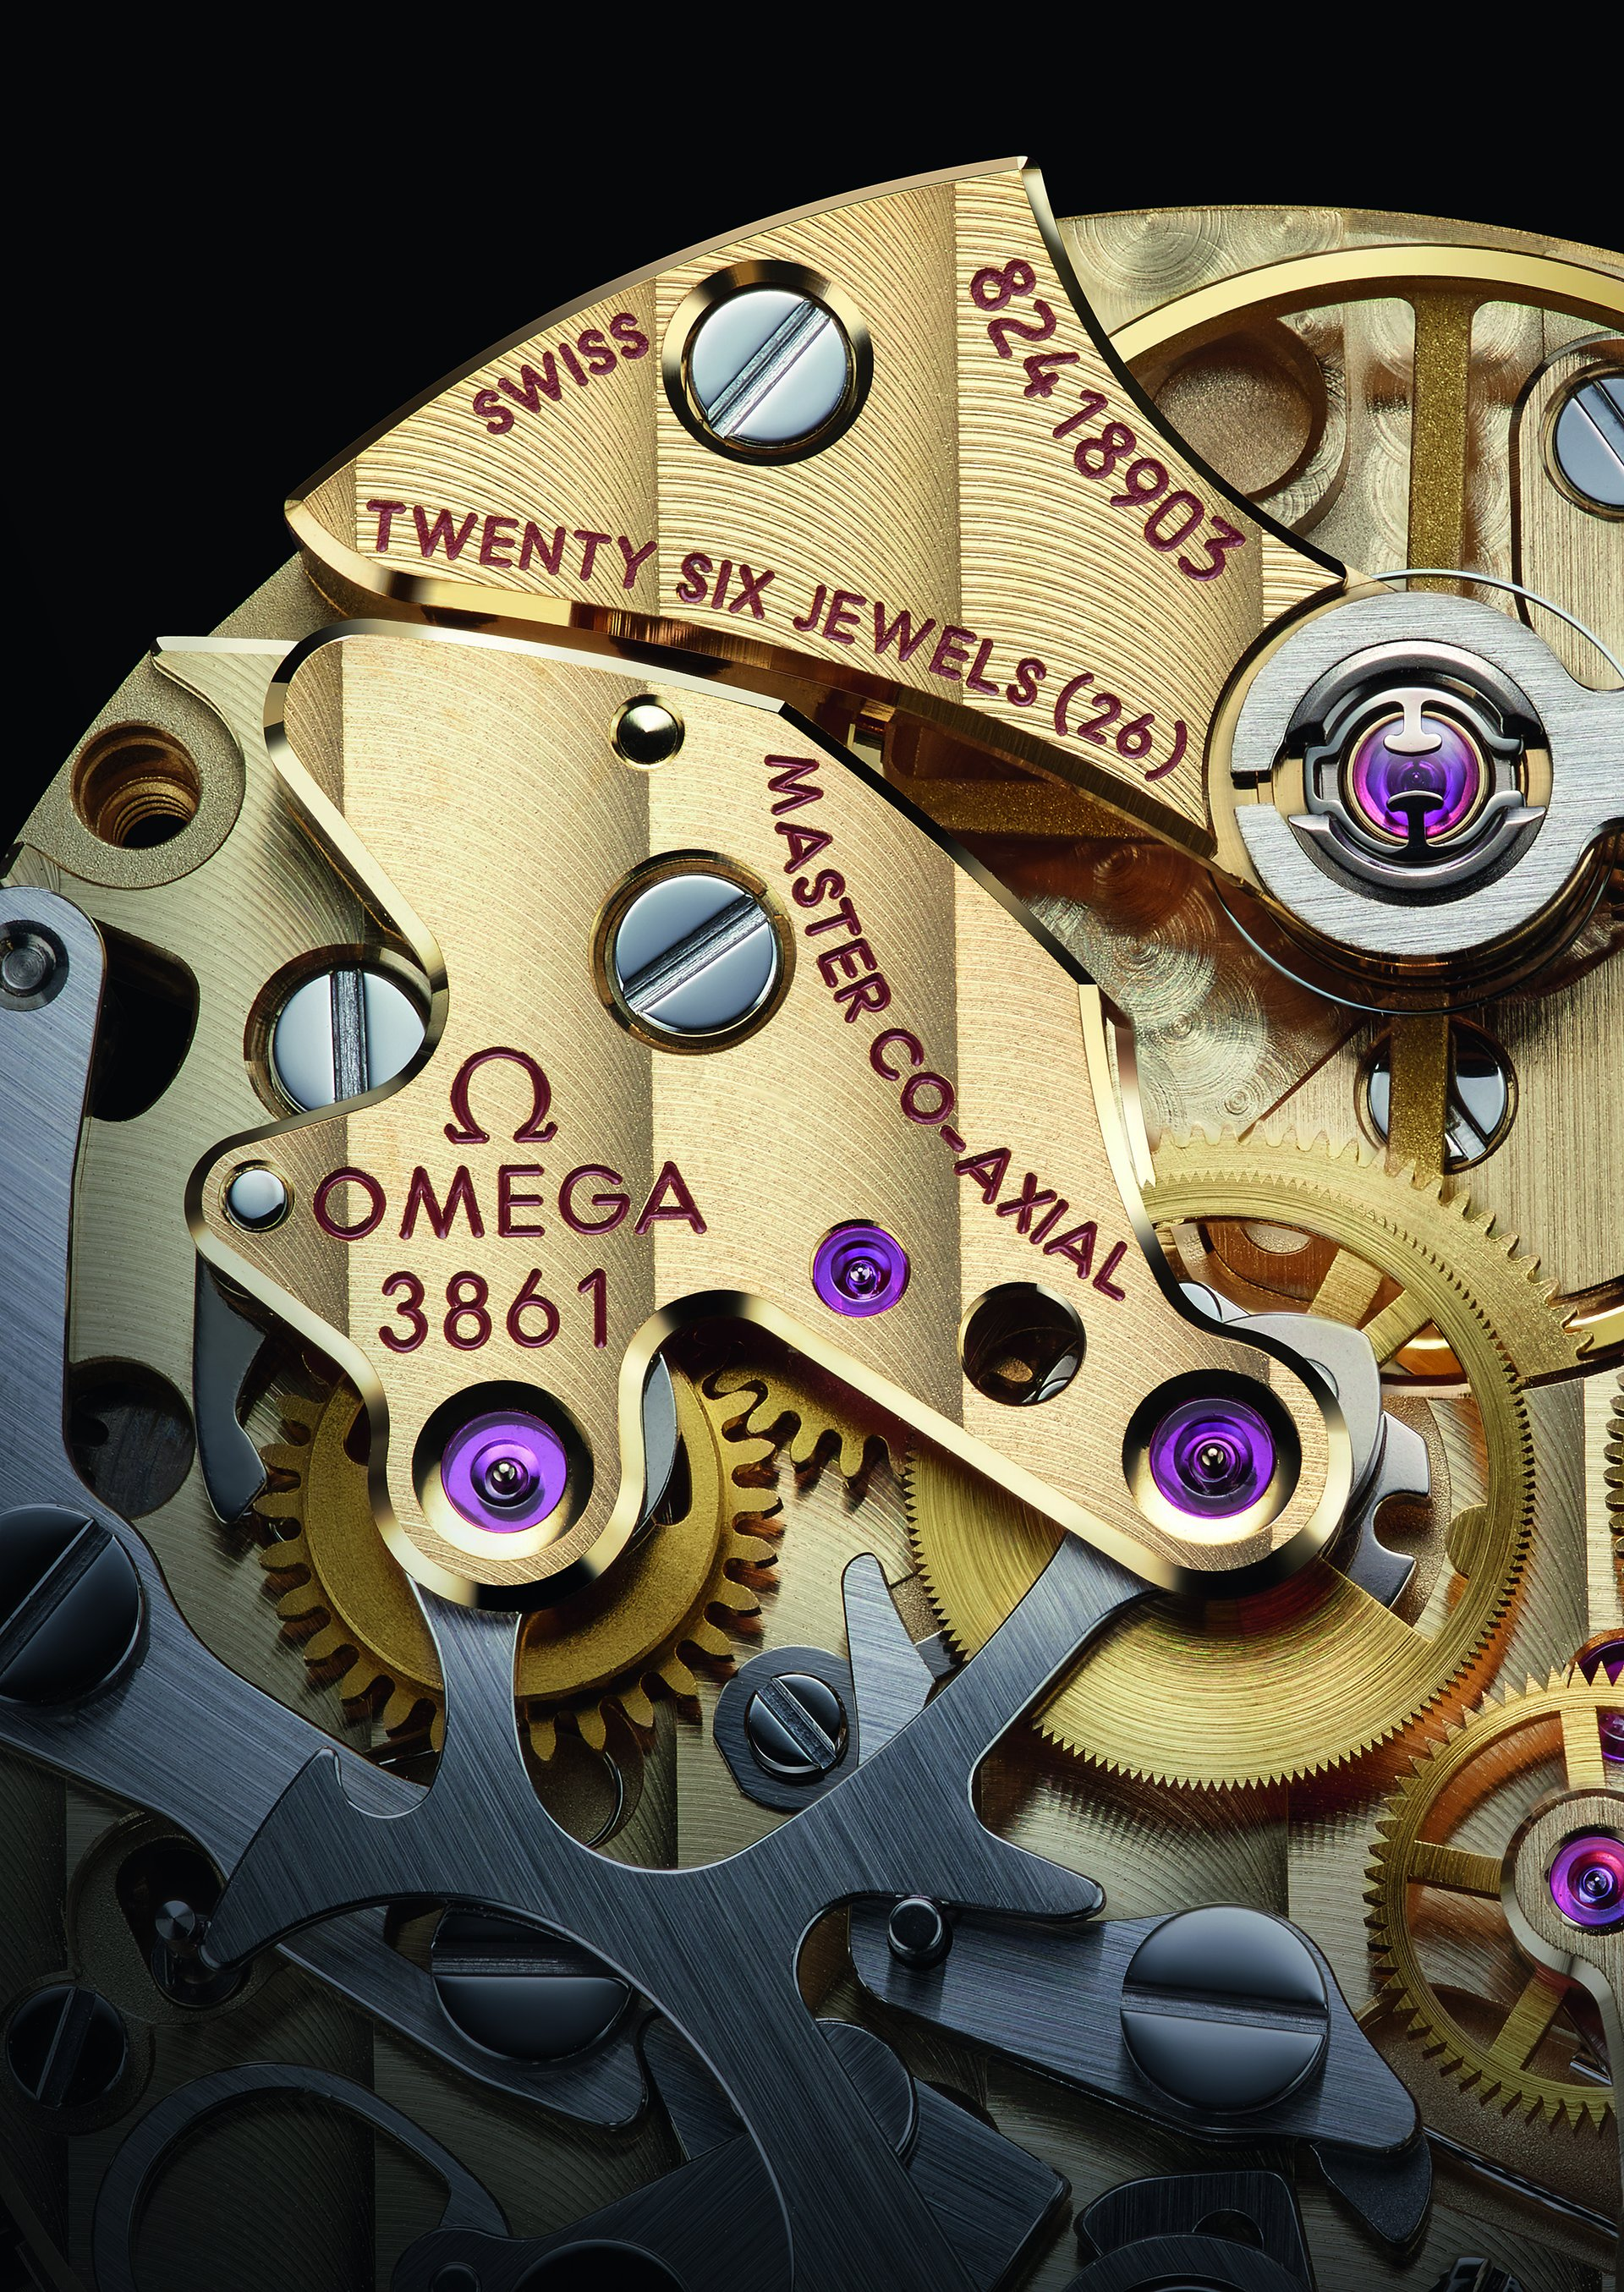 Omega Calibre 3861 moonshine gold